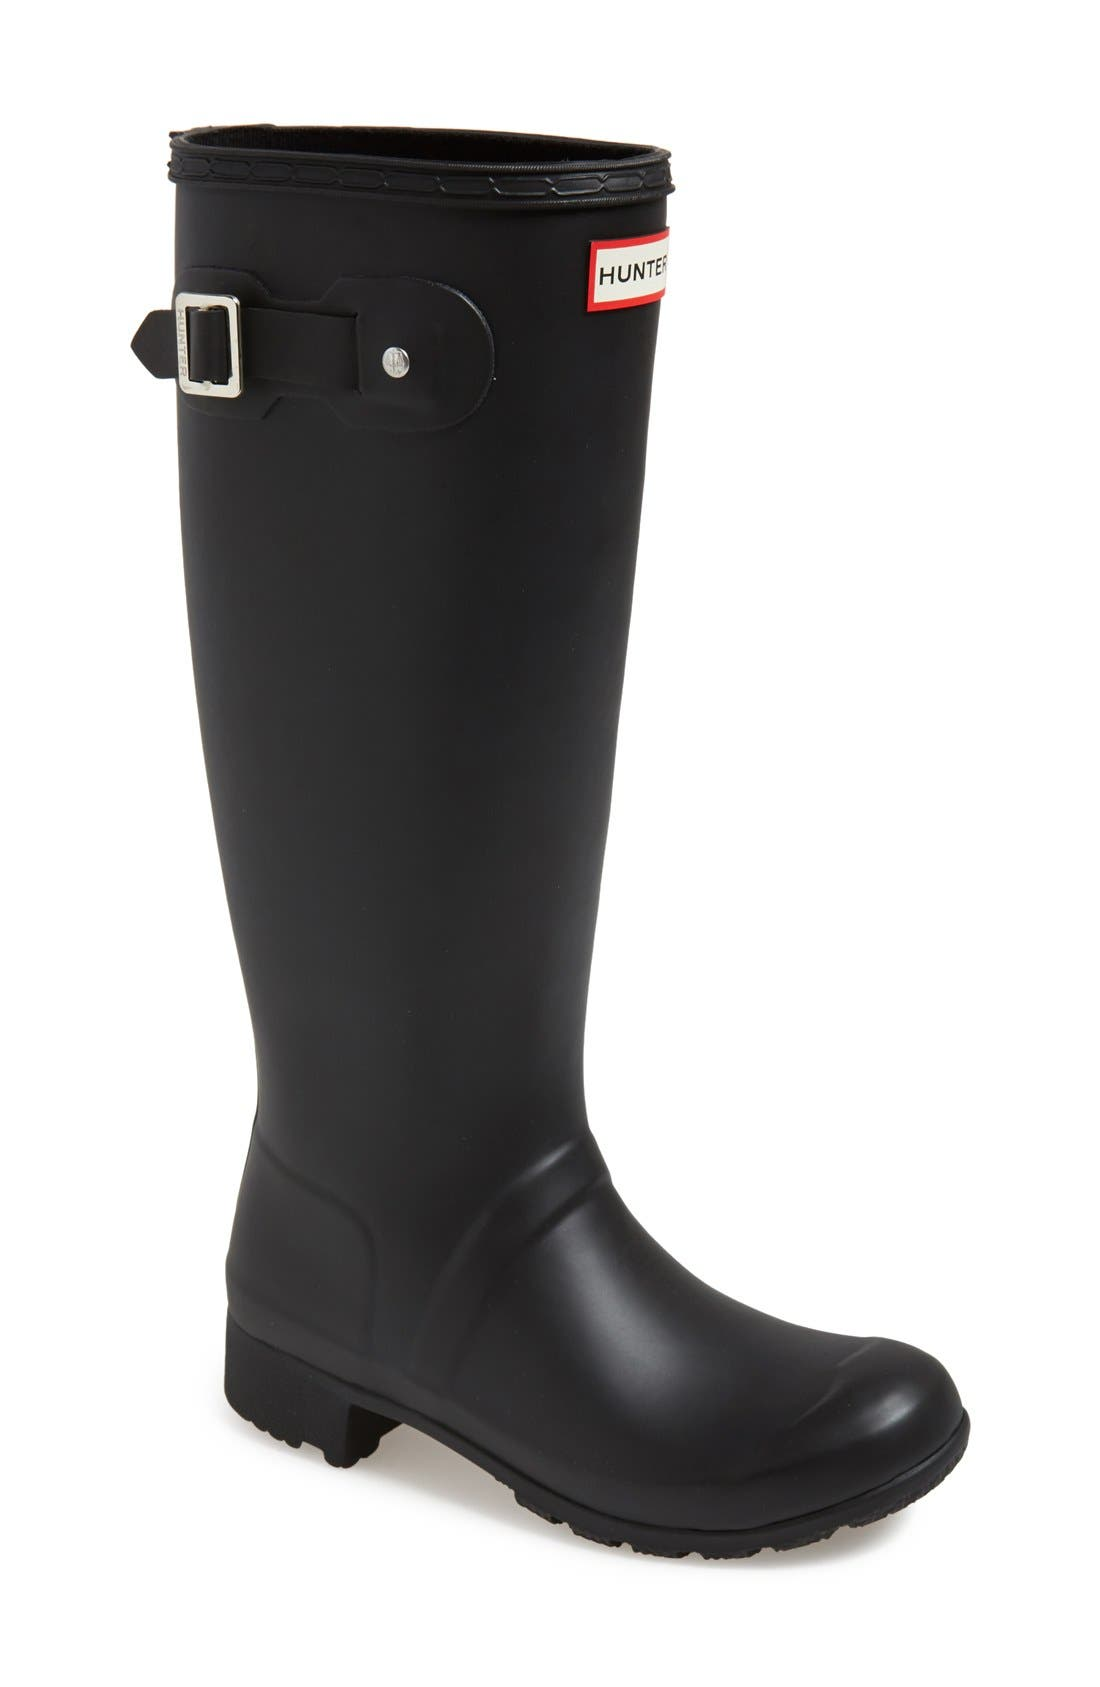 Tour Packable Rain Boot,                             Main thumbnail 1, color,                             BLACK/ BLACK